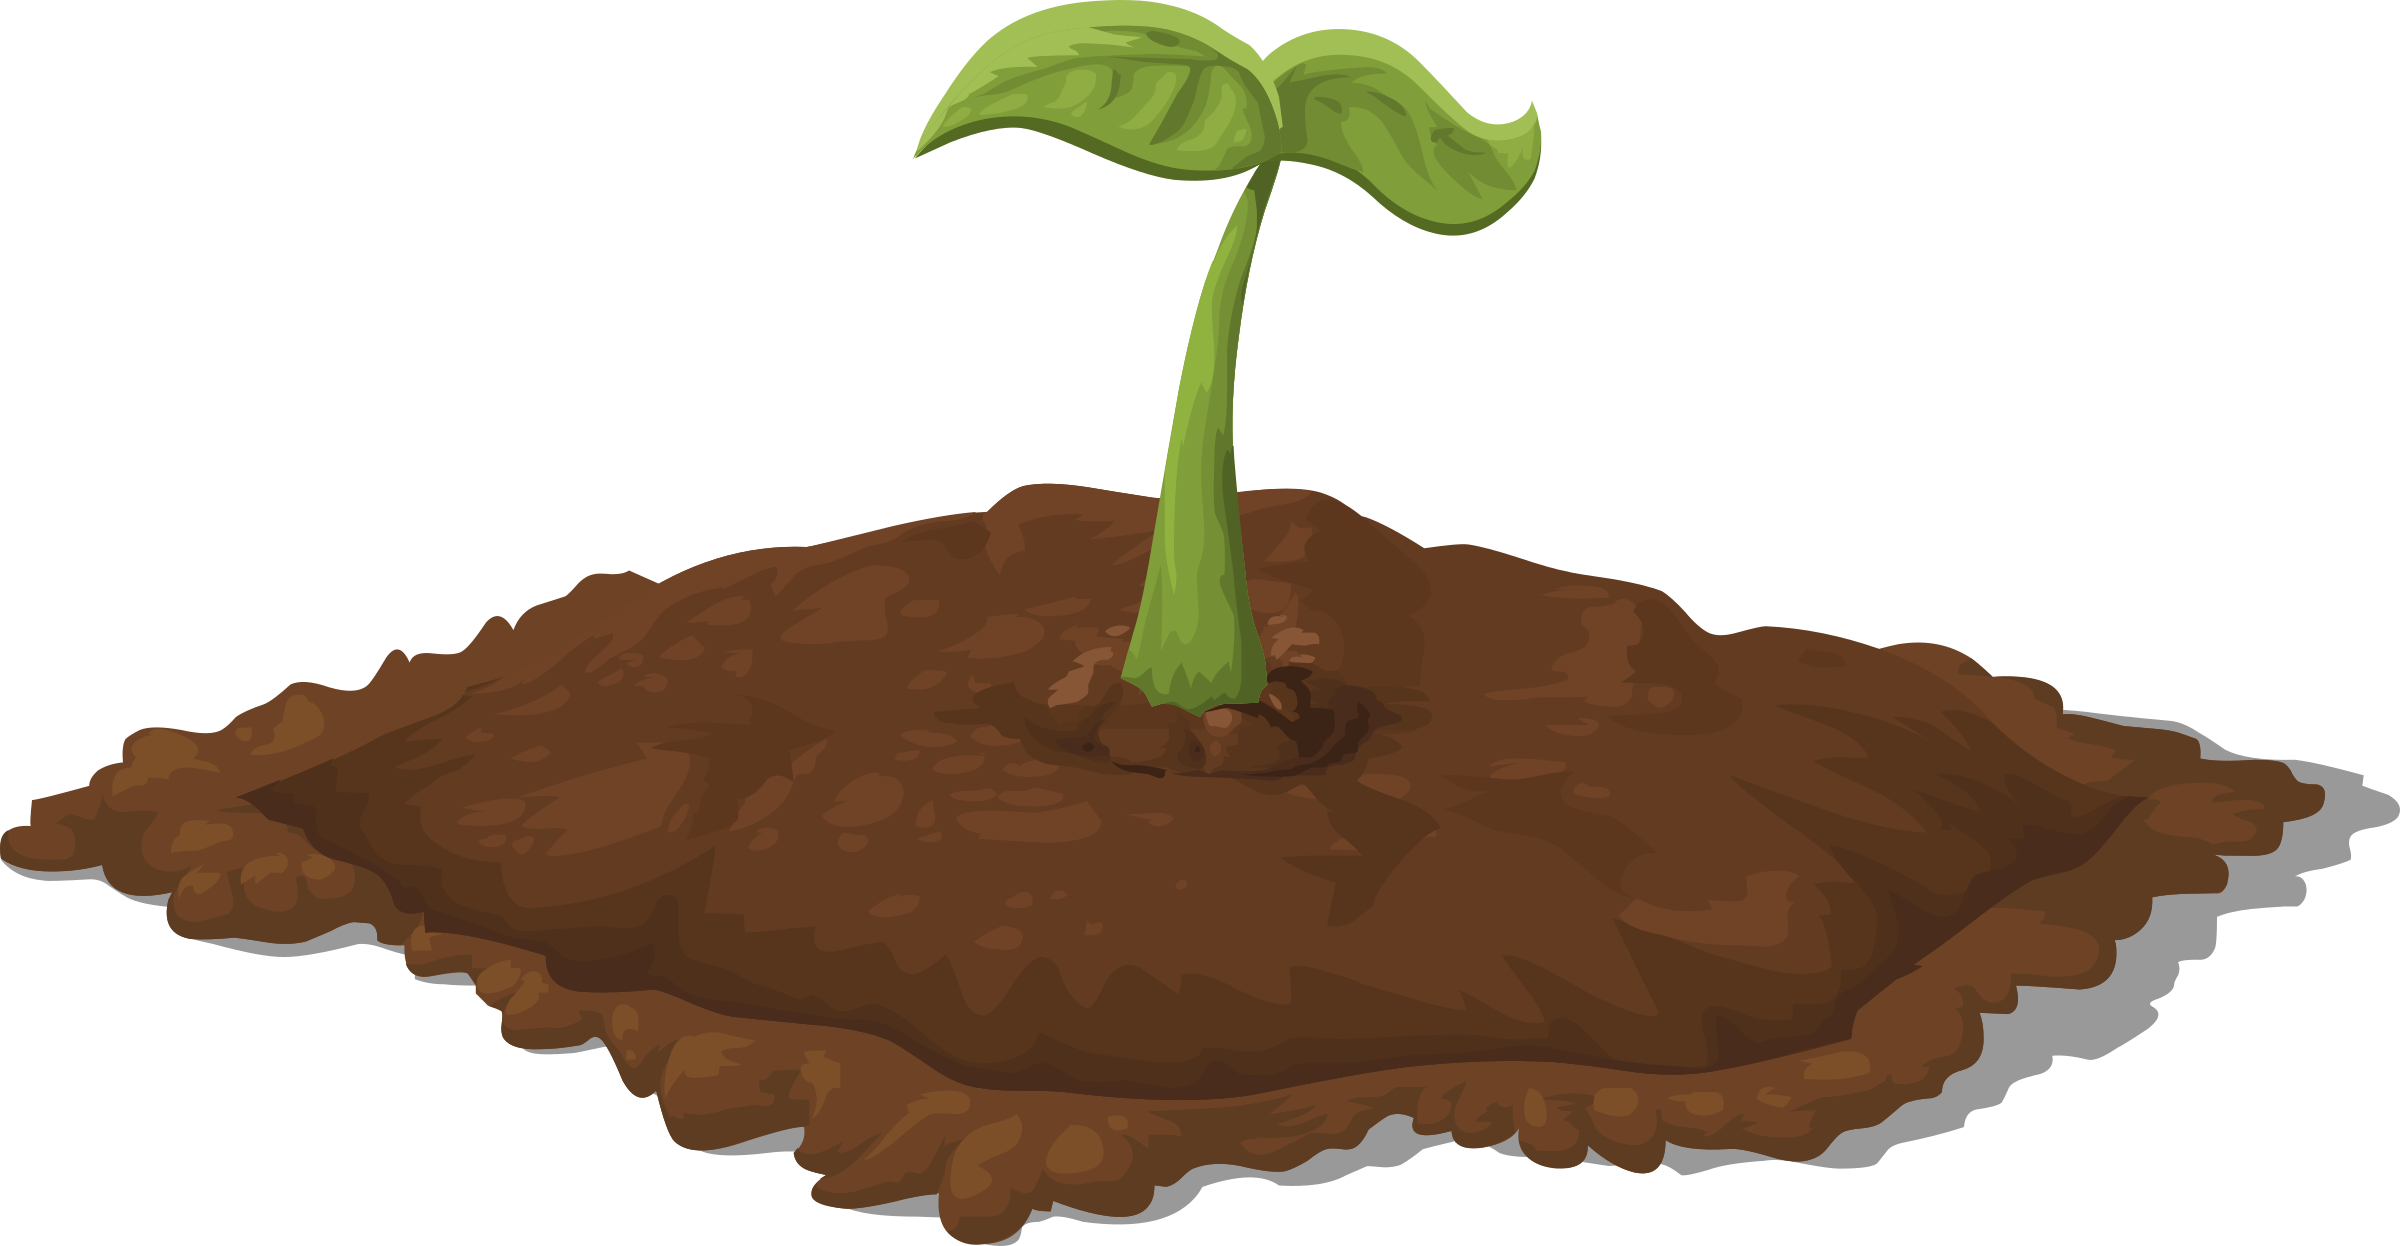 Harvestable resources patch seedling. Dirt clipart dirt pile